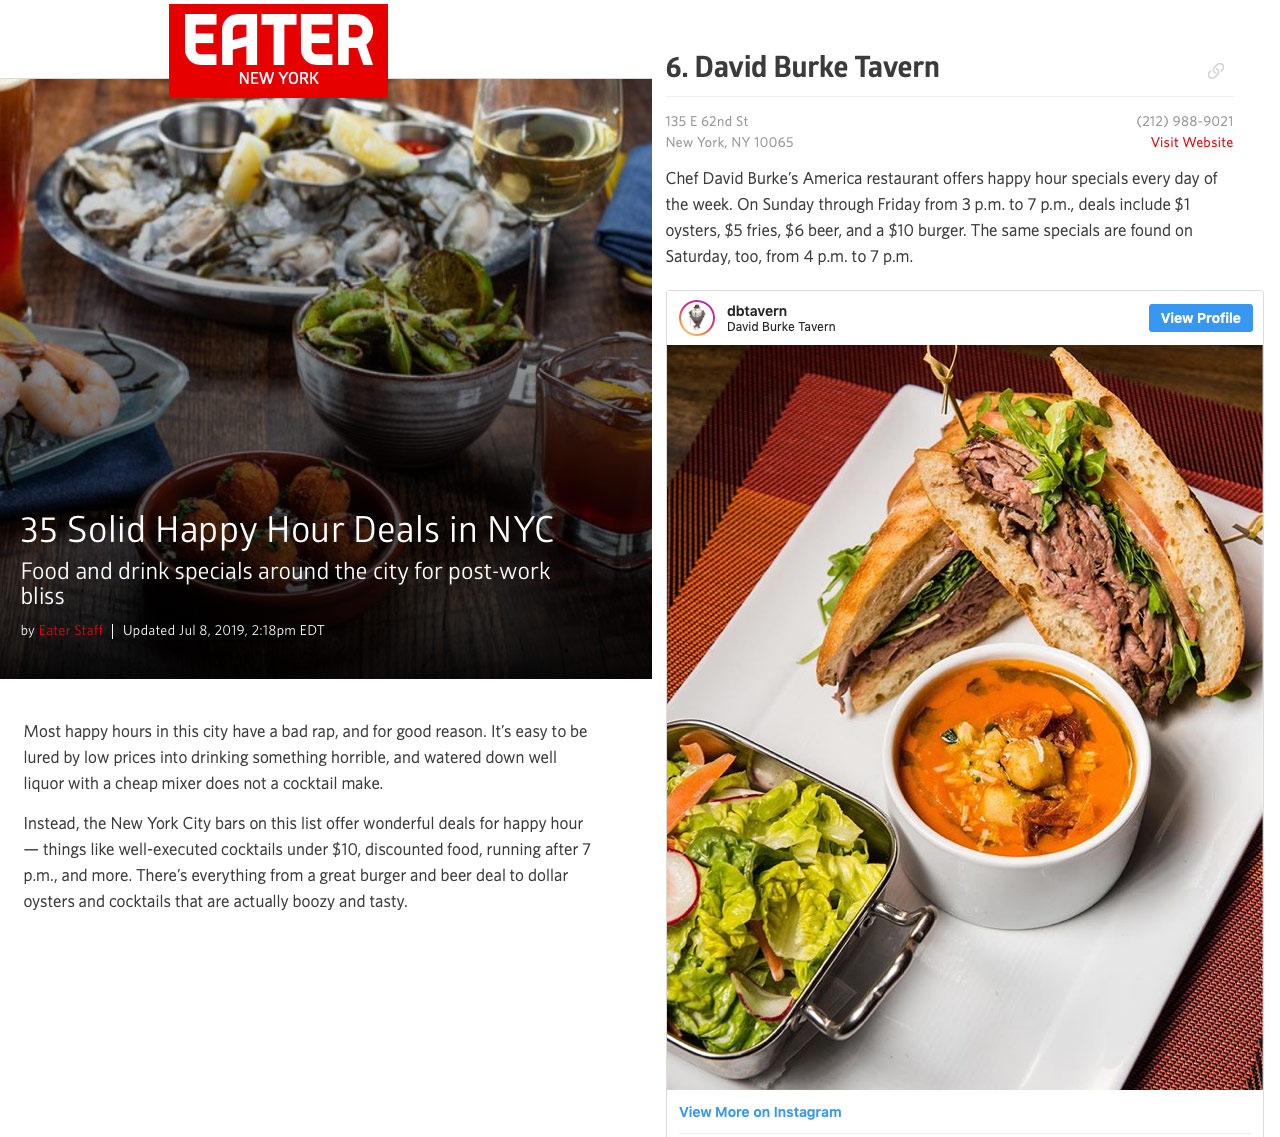 EATER: 35 Solid Happy Hours in NYC